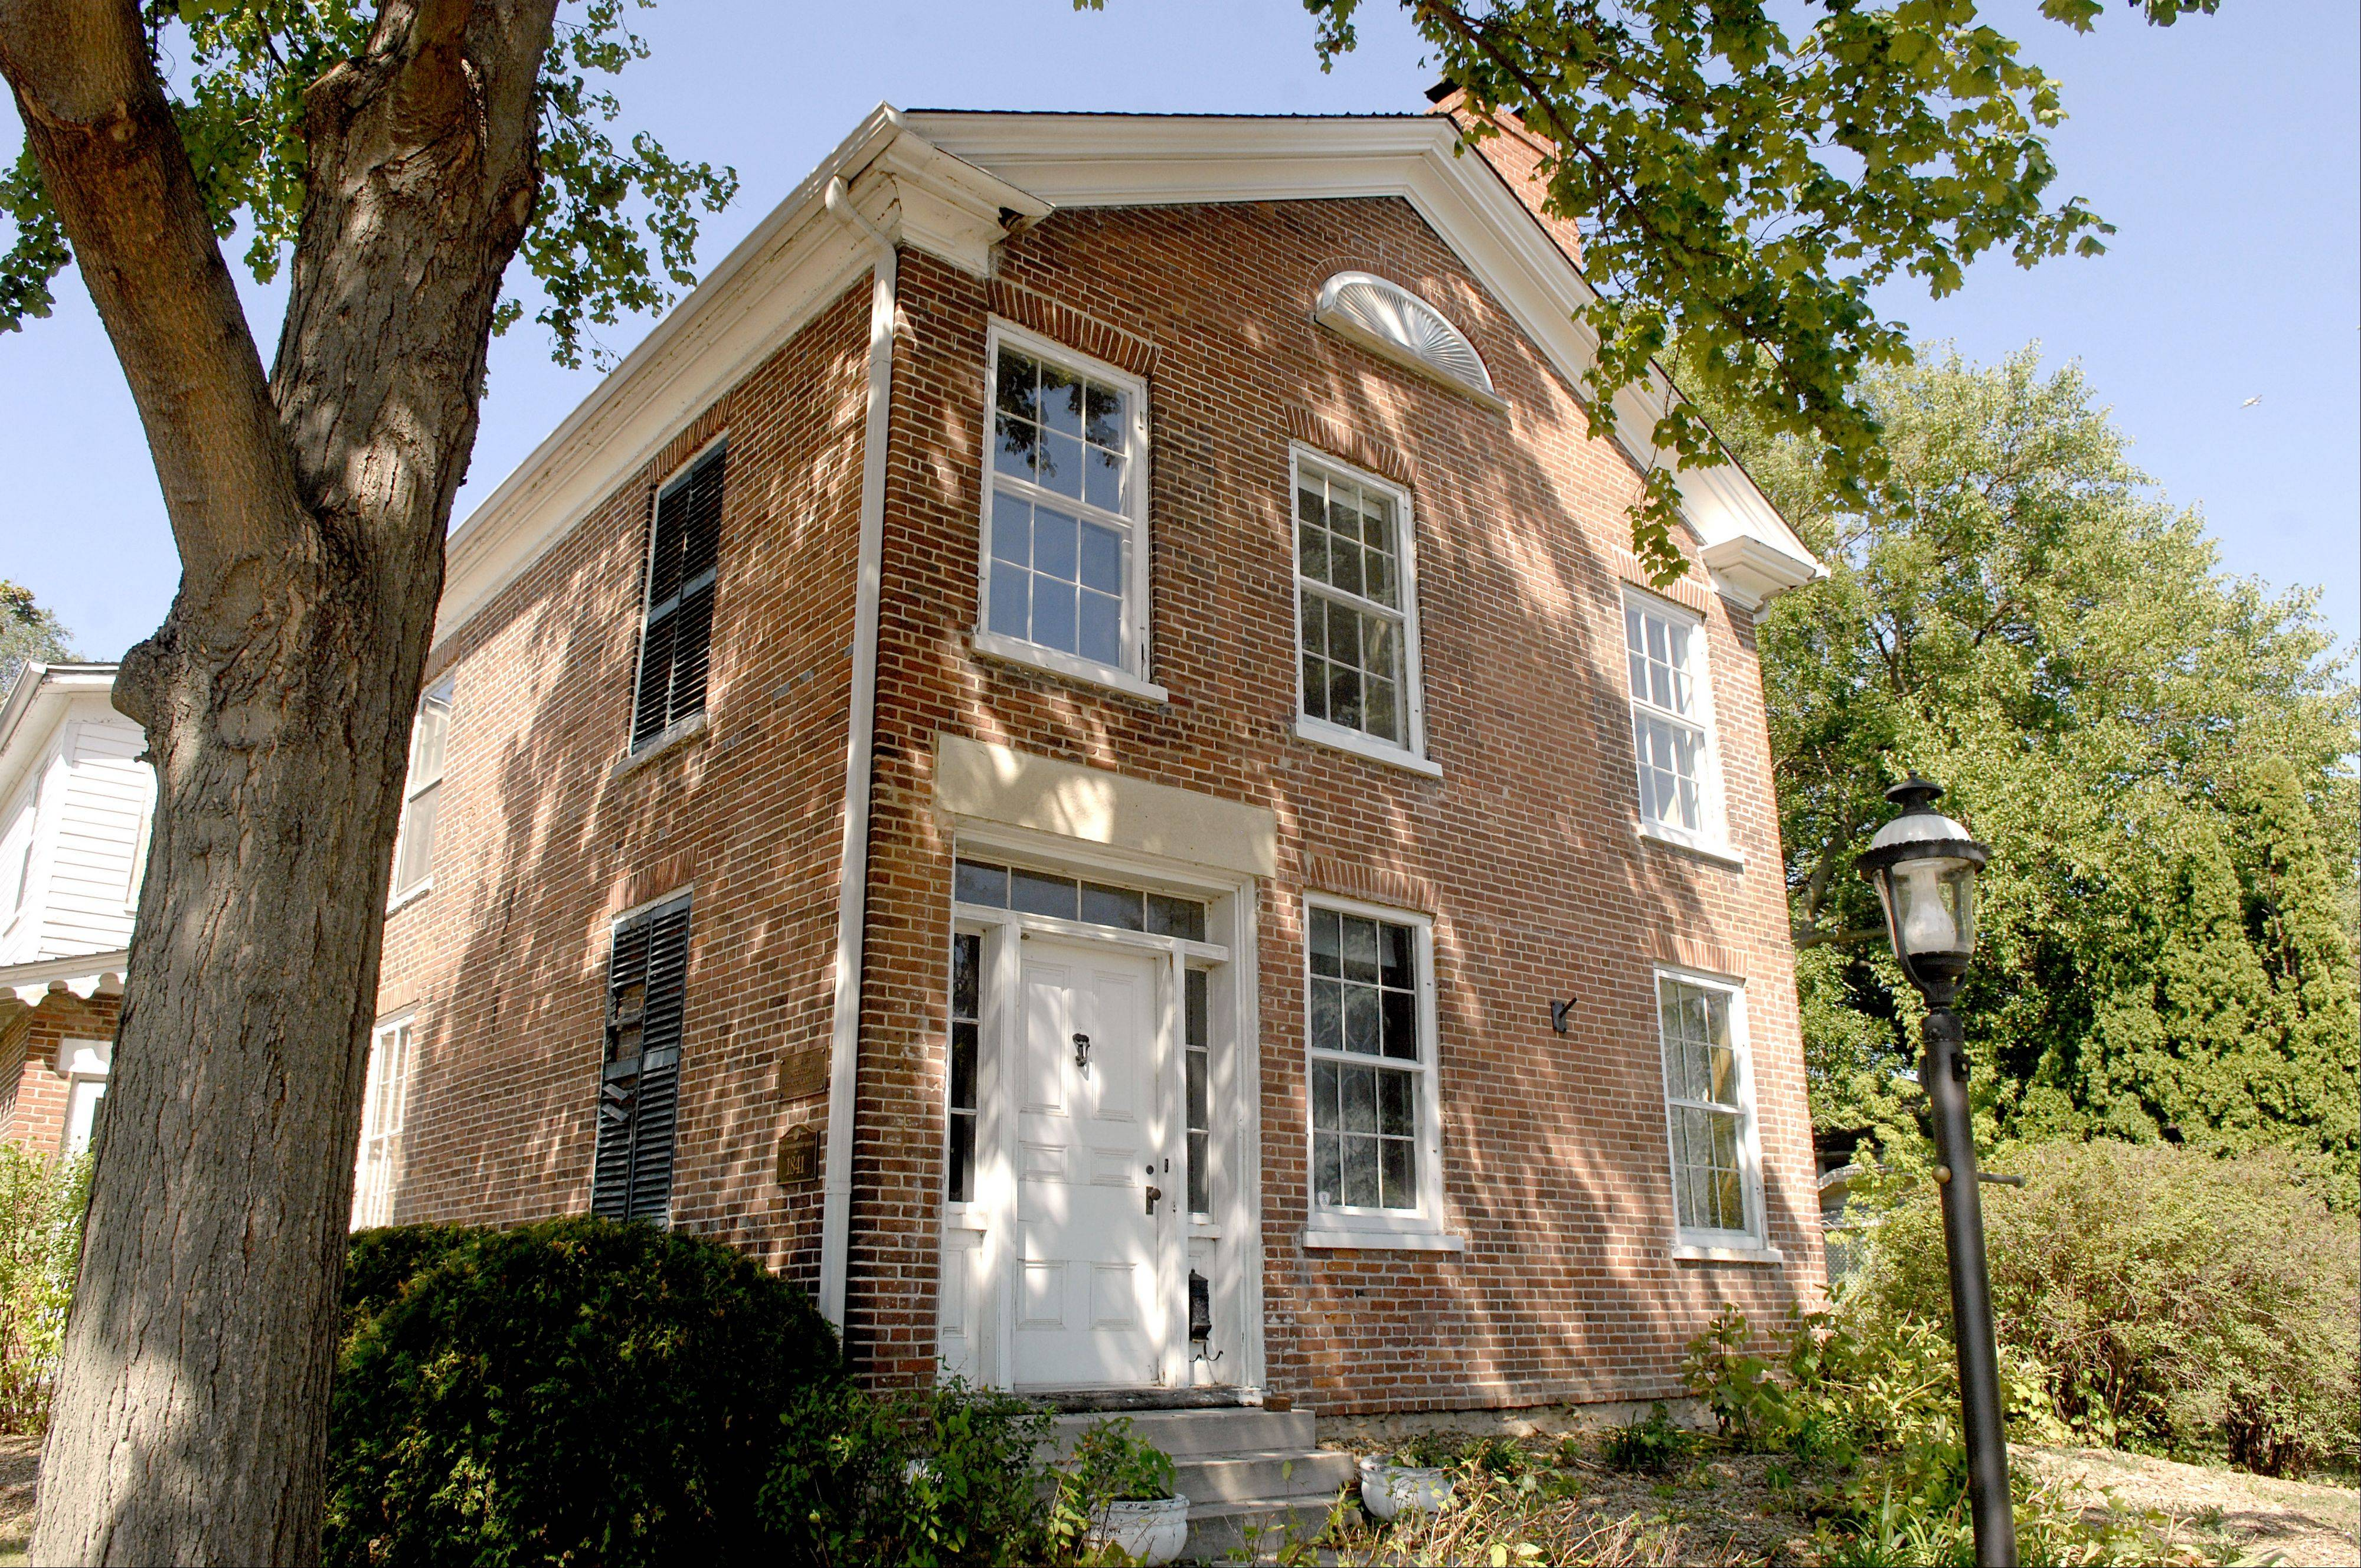 The Dunham-Hunt House at Cedar and Third avenues in St. Charles is back on the market but needs many repairs.